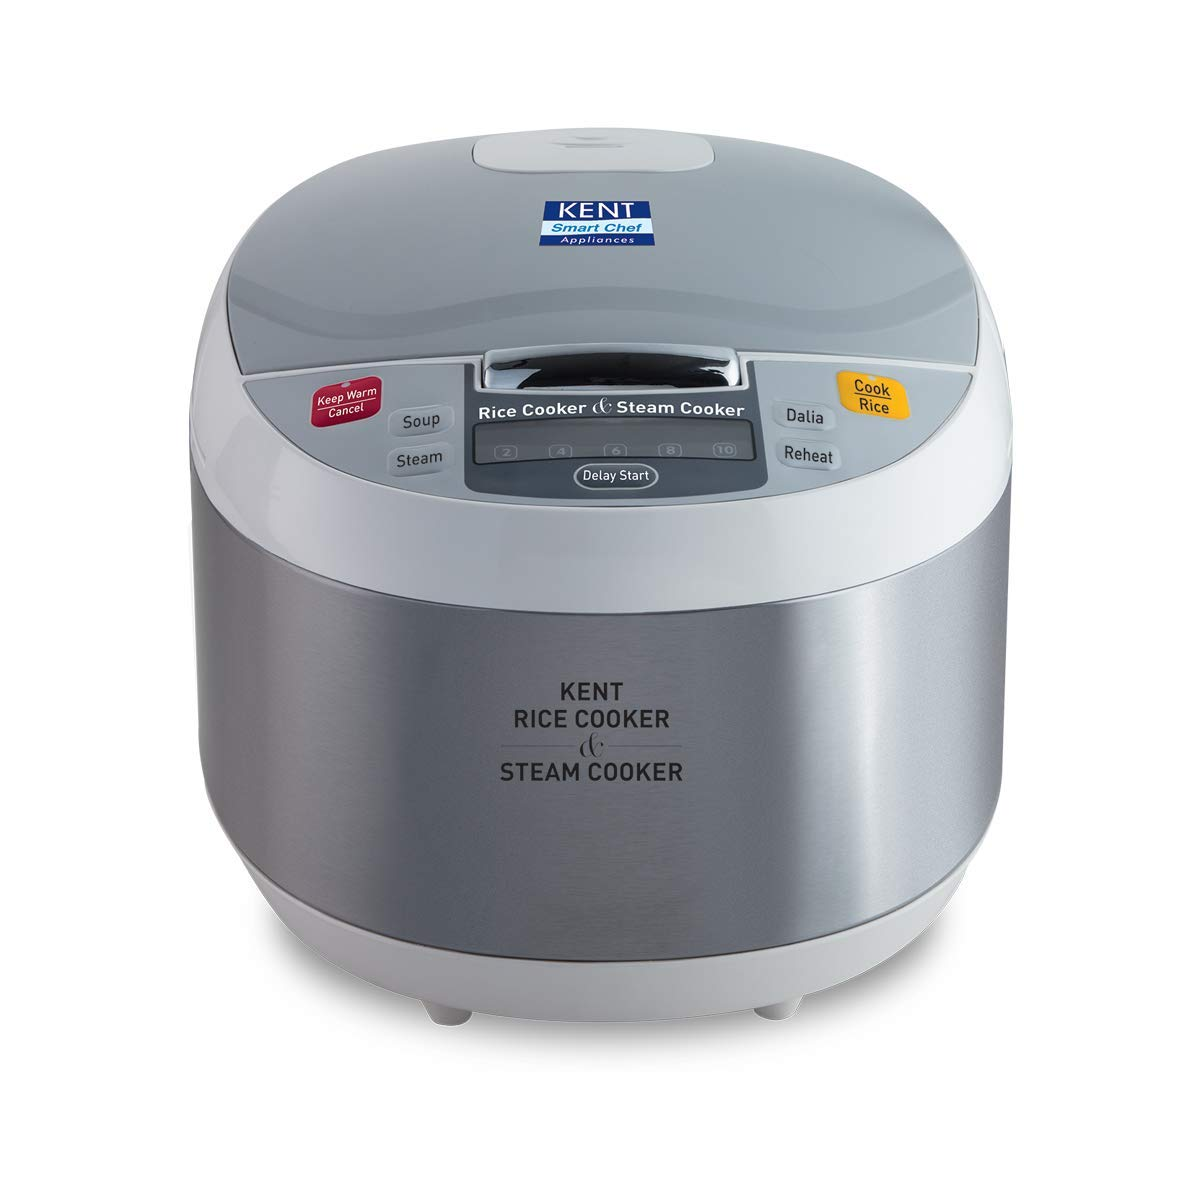 KENT Rice and Steam Cooker 860-Watt at Rs.3991